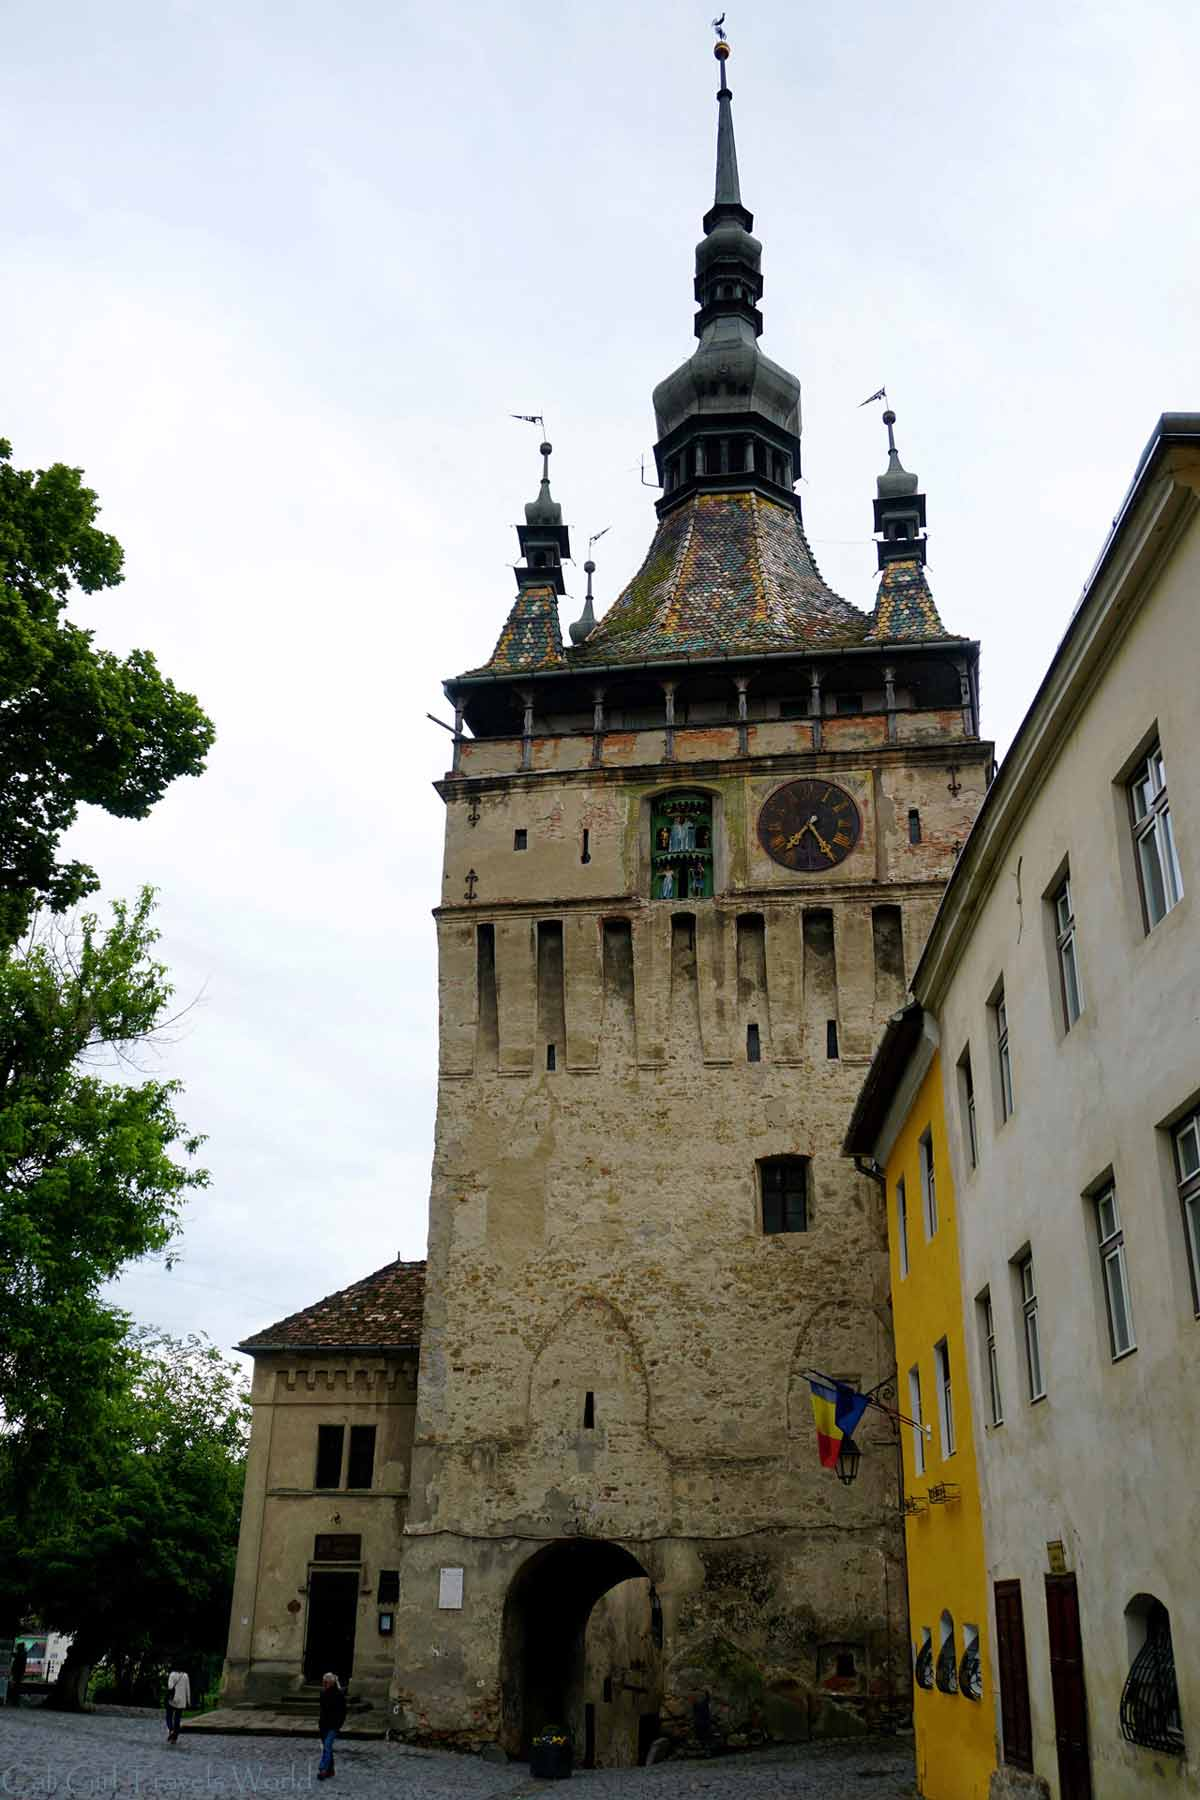 Council Tower of Sighisoara, Transylvania.